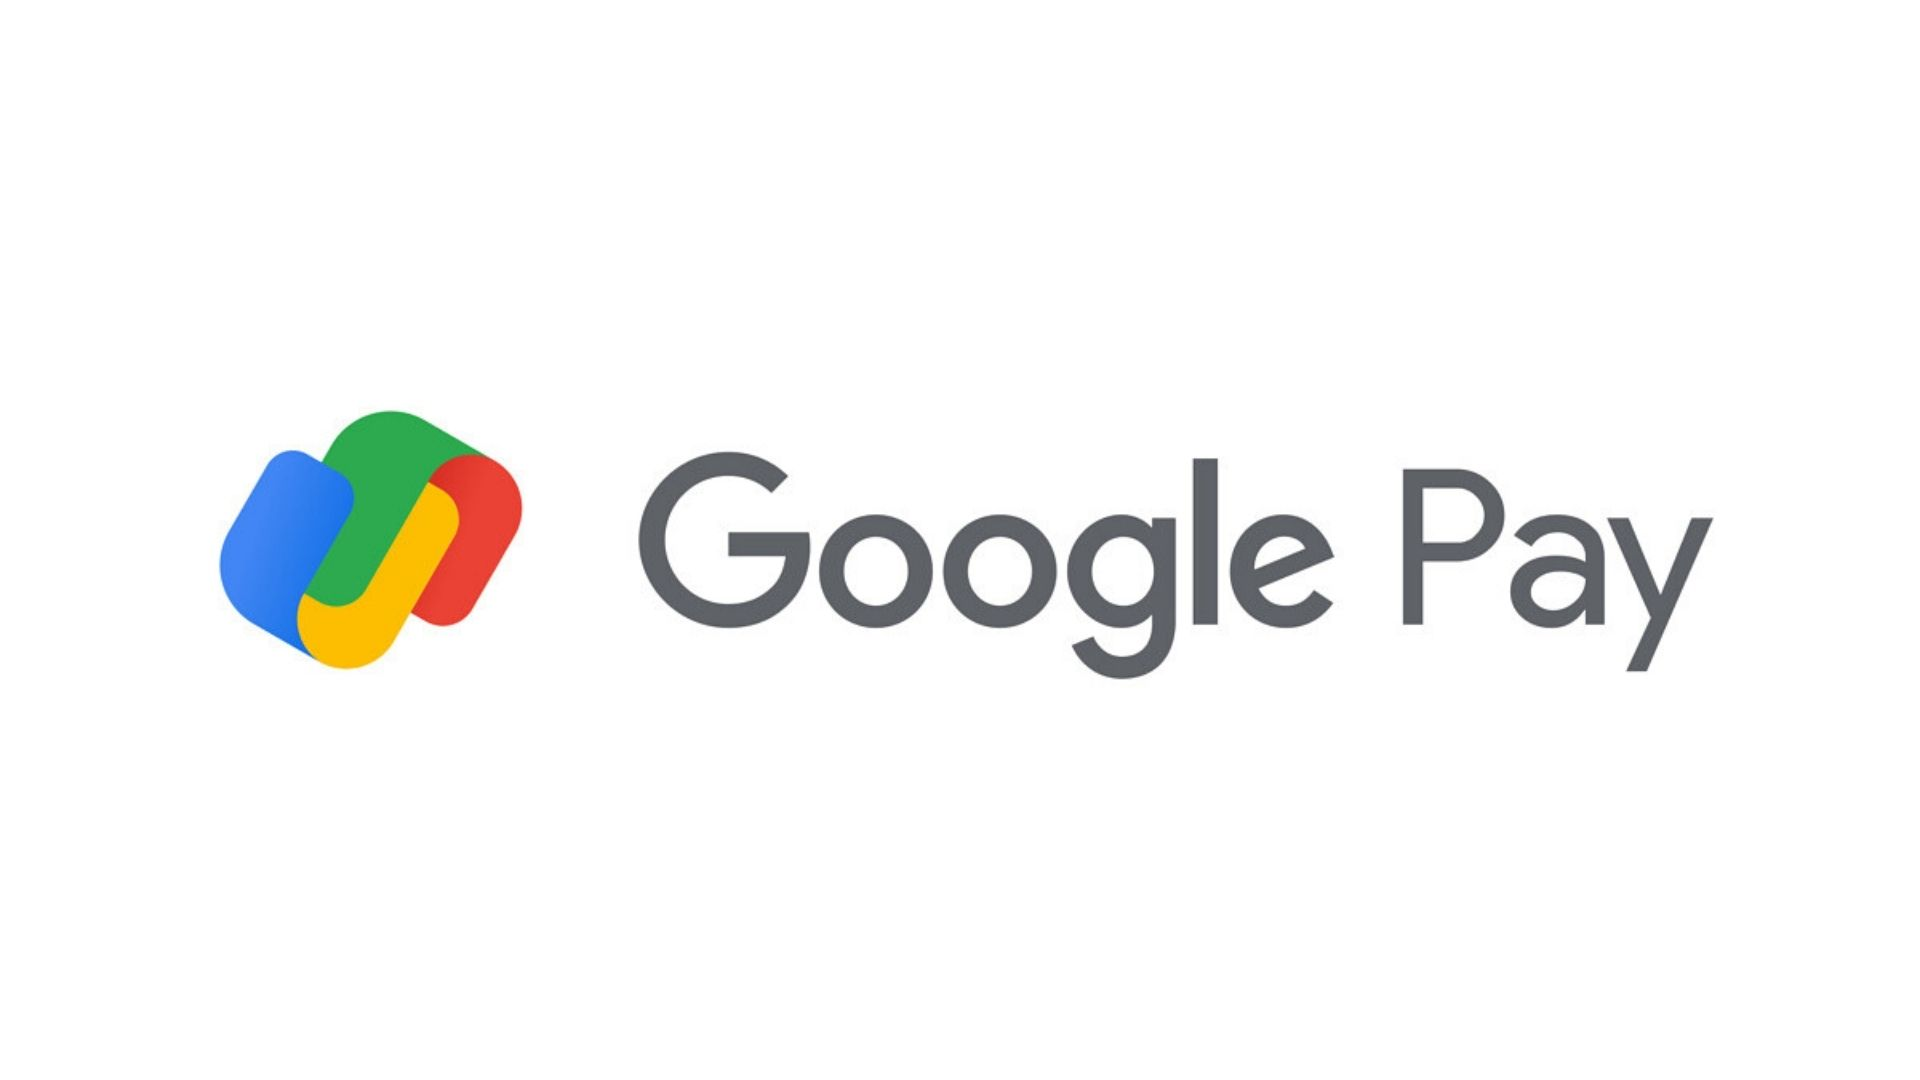 Google Pay to serve targeted ads to users based on spends - Exchange4media